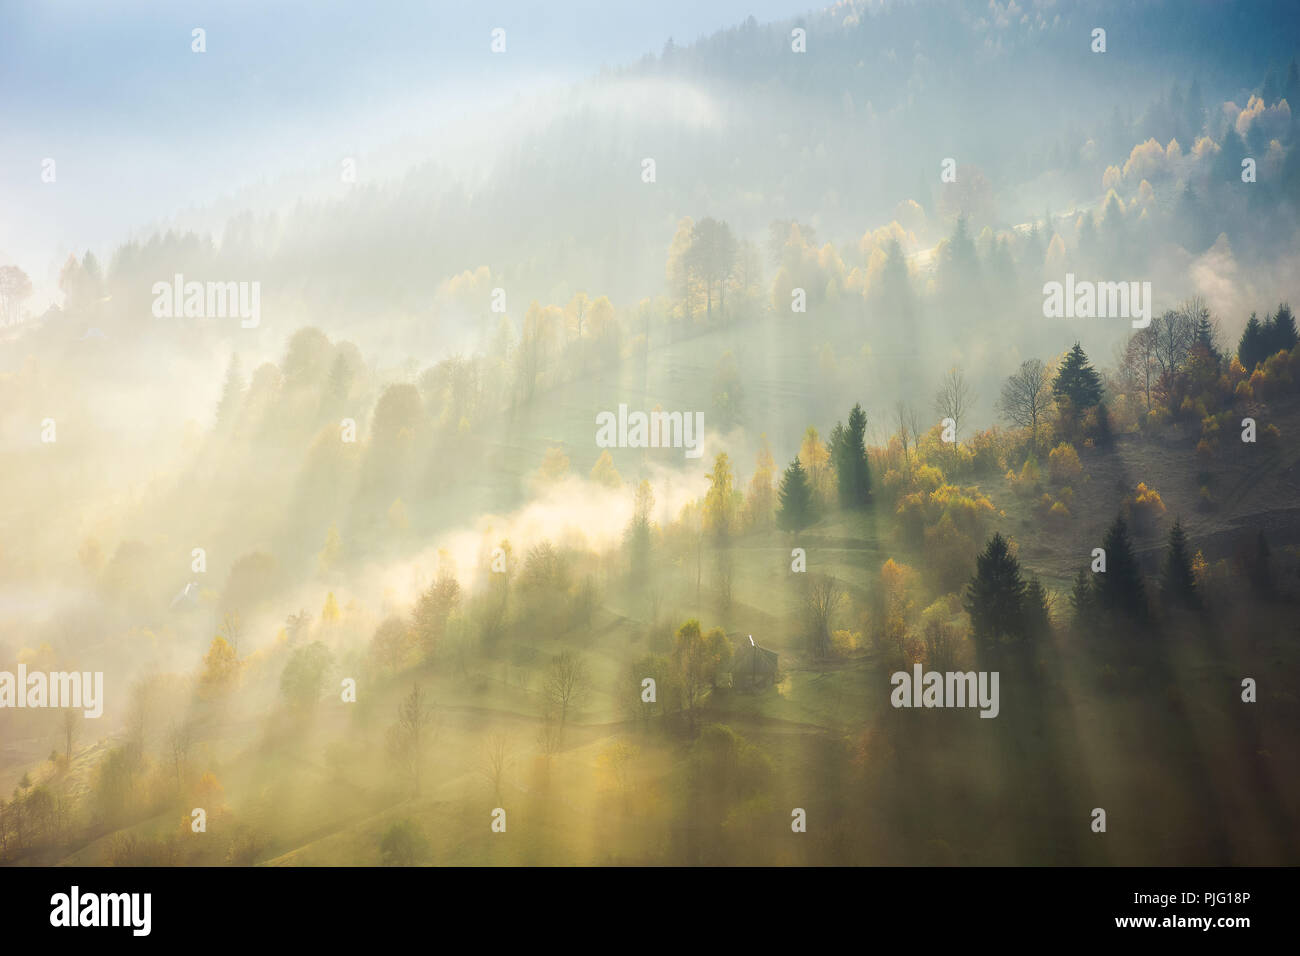 beautiful nature scene in fog. bursts of light come through haze among the trees down the hill. wonderful autumn atmosphere - Stock Image